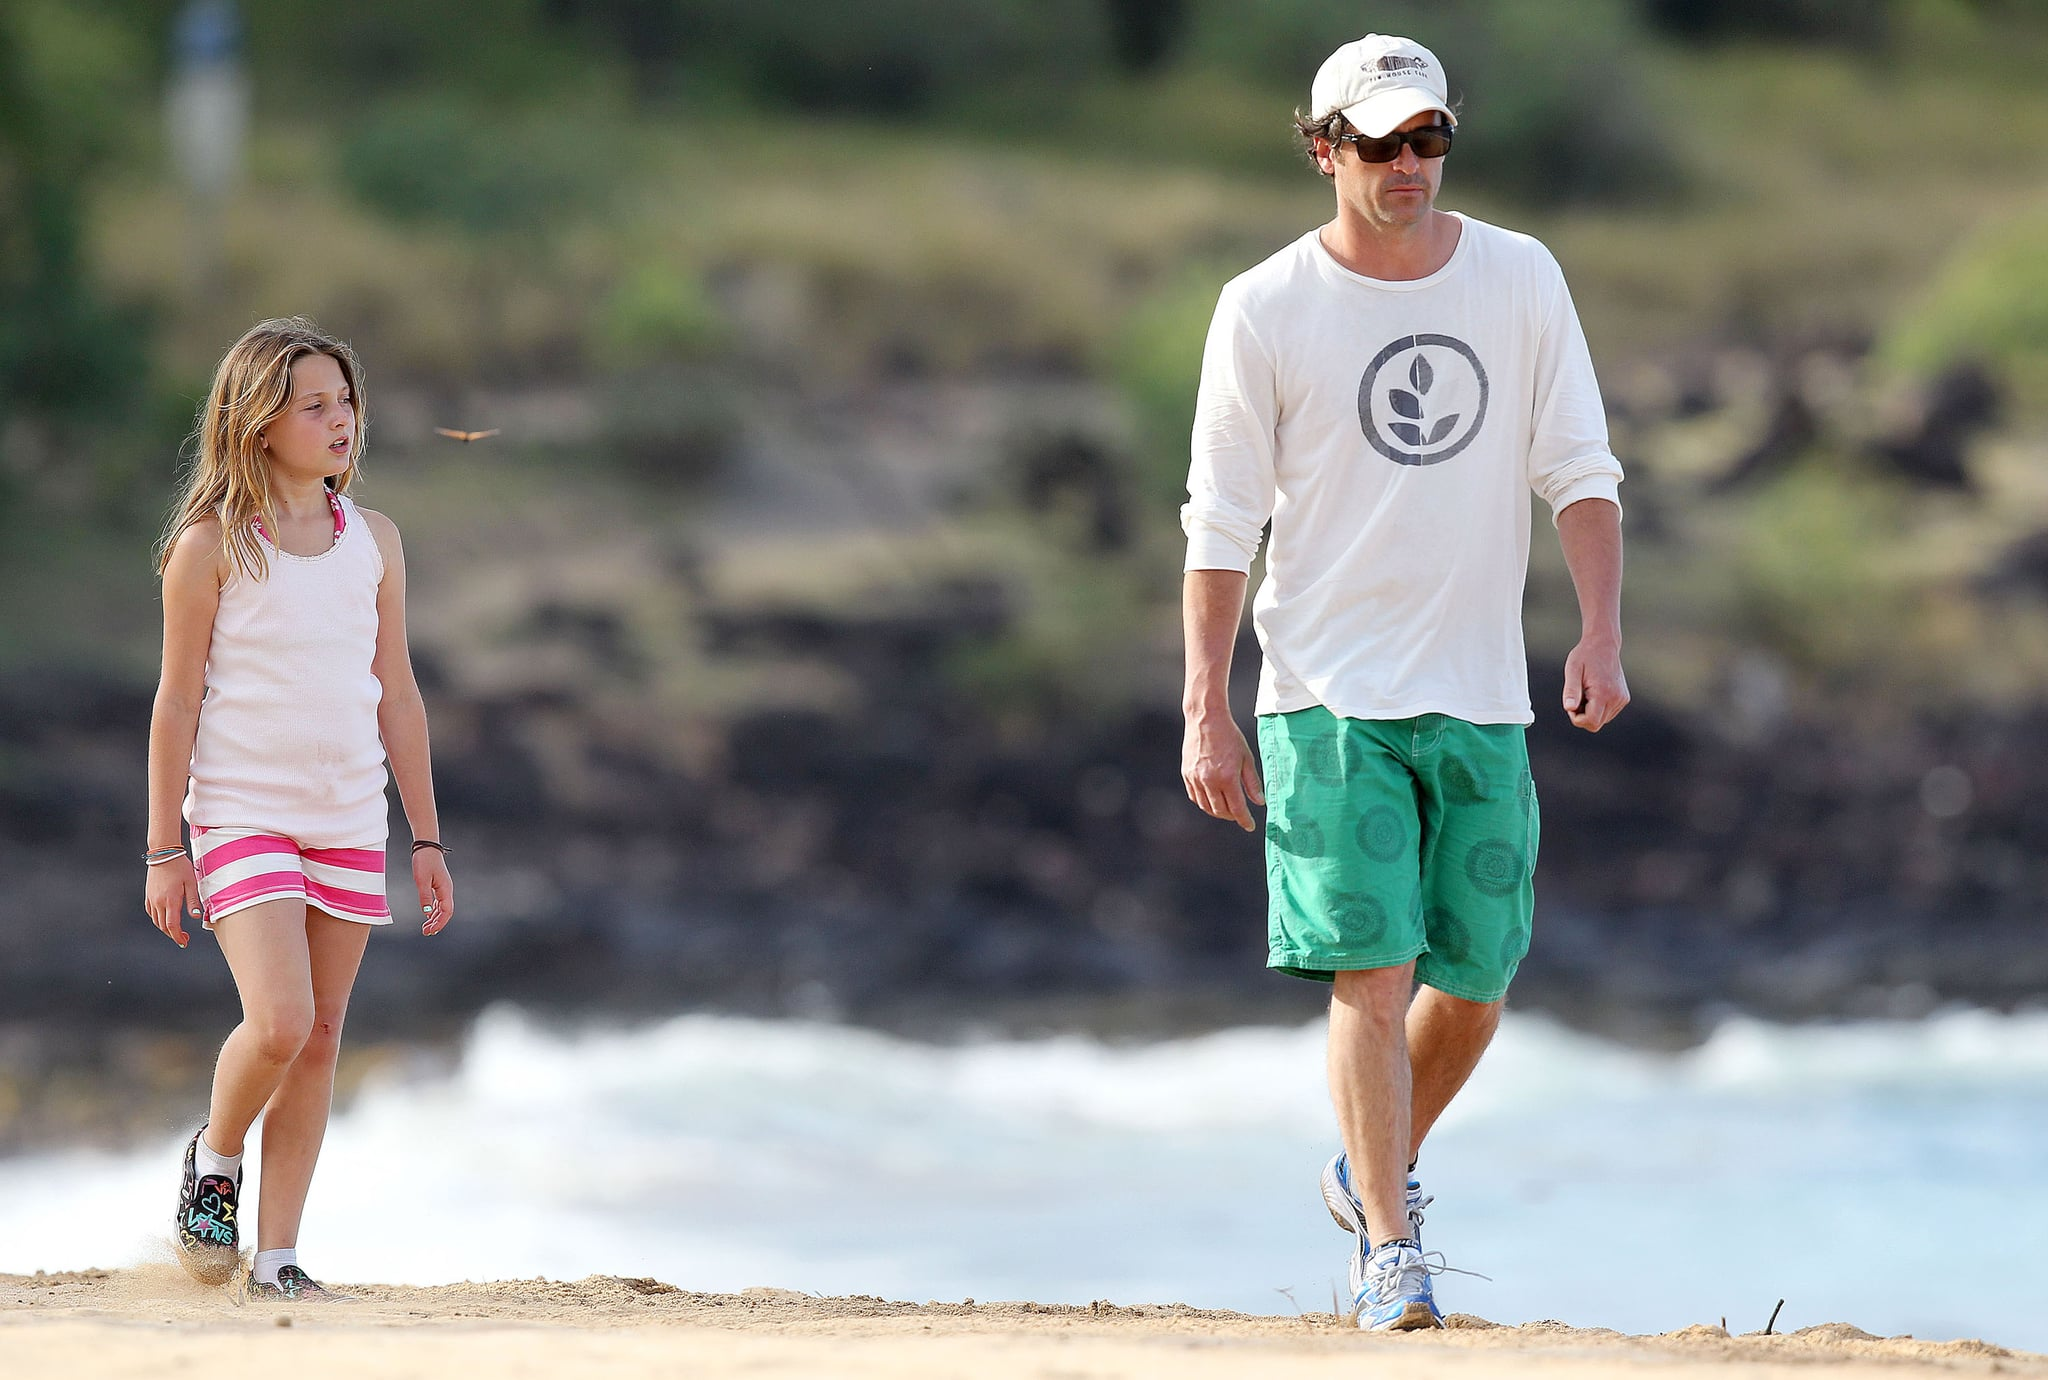 Patrick Dempsey Embraces the Spirit of Aloha on Vacation